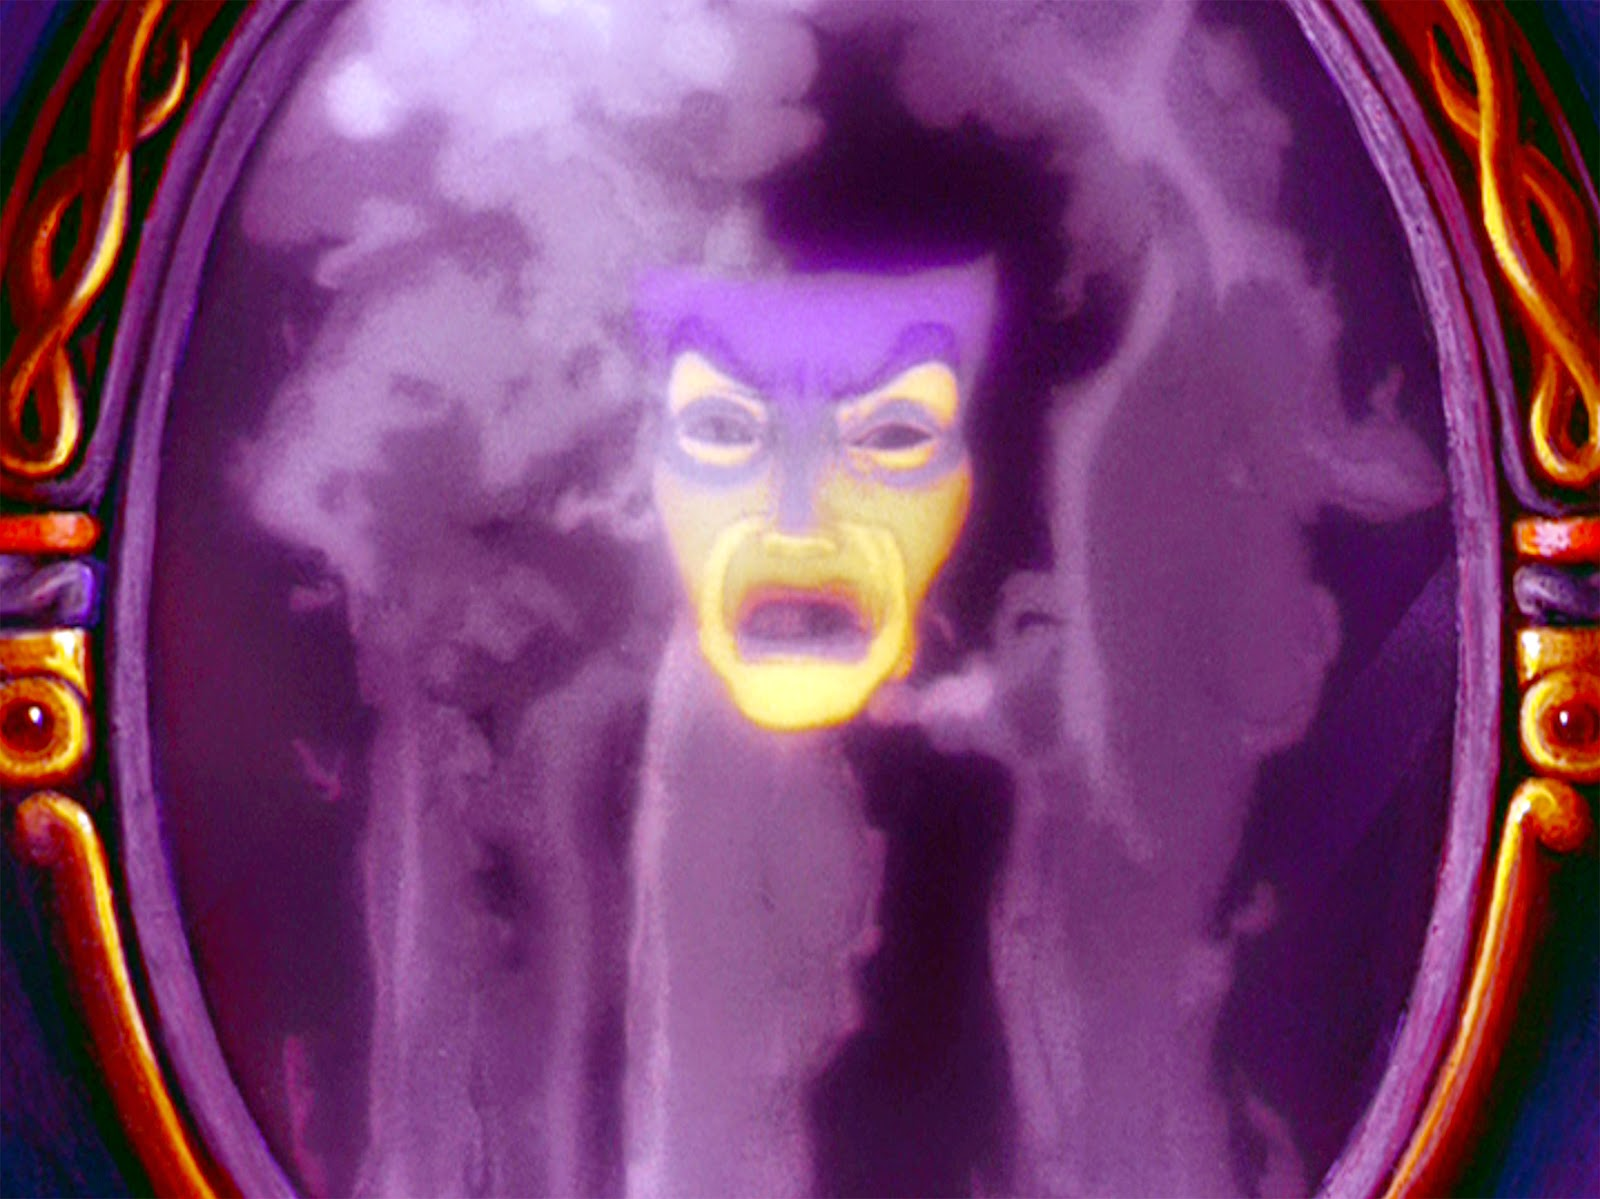 Magic mirror from snow white, showing a face in a haze of purple smoke.